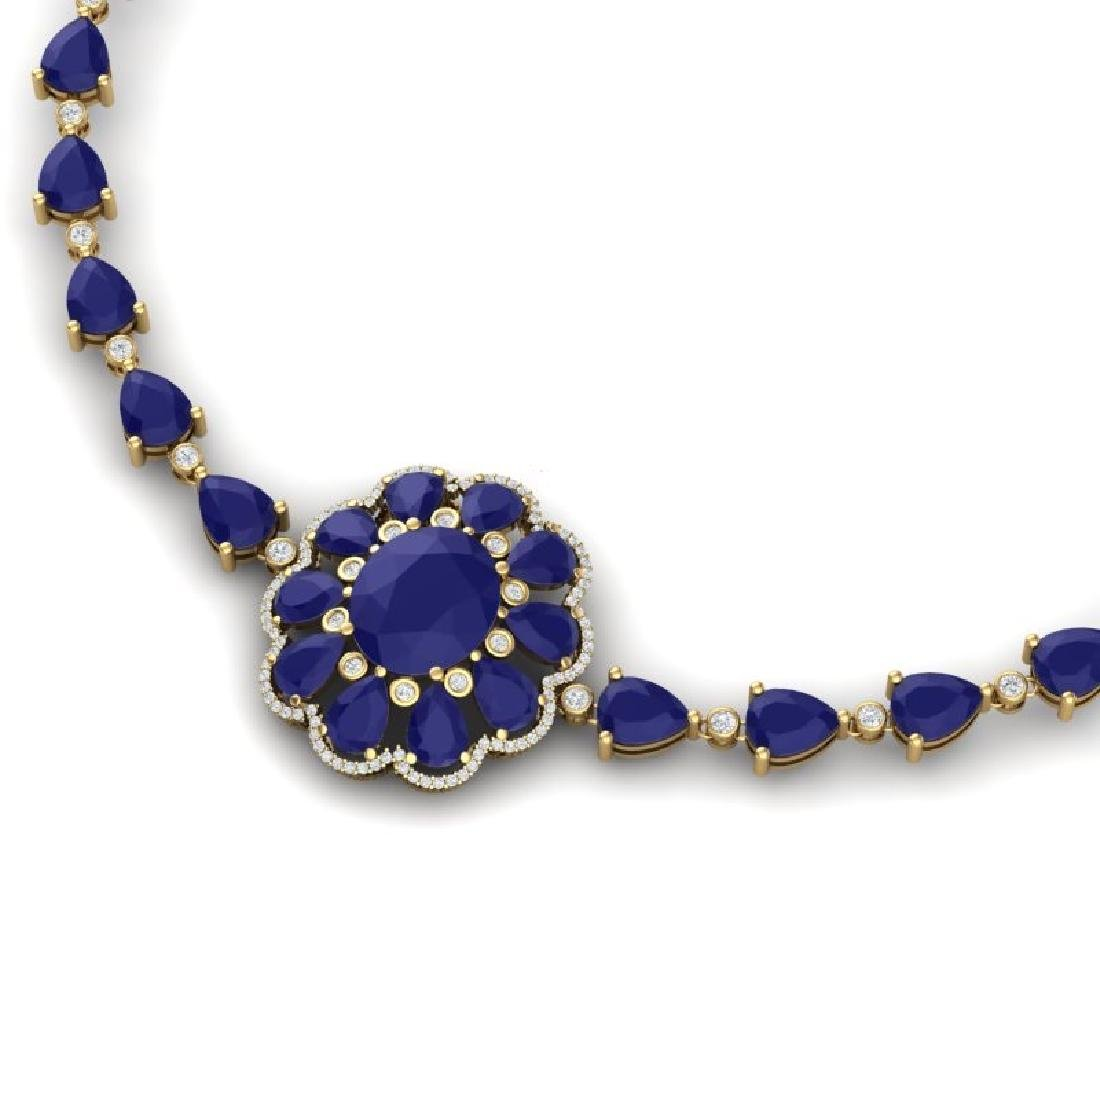 78.98 CTW Royalty Sapphire & VS Diamond Necklace 18K